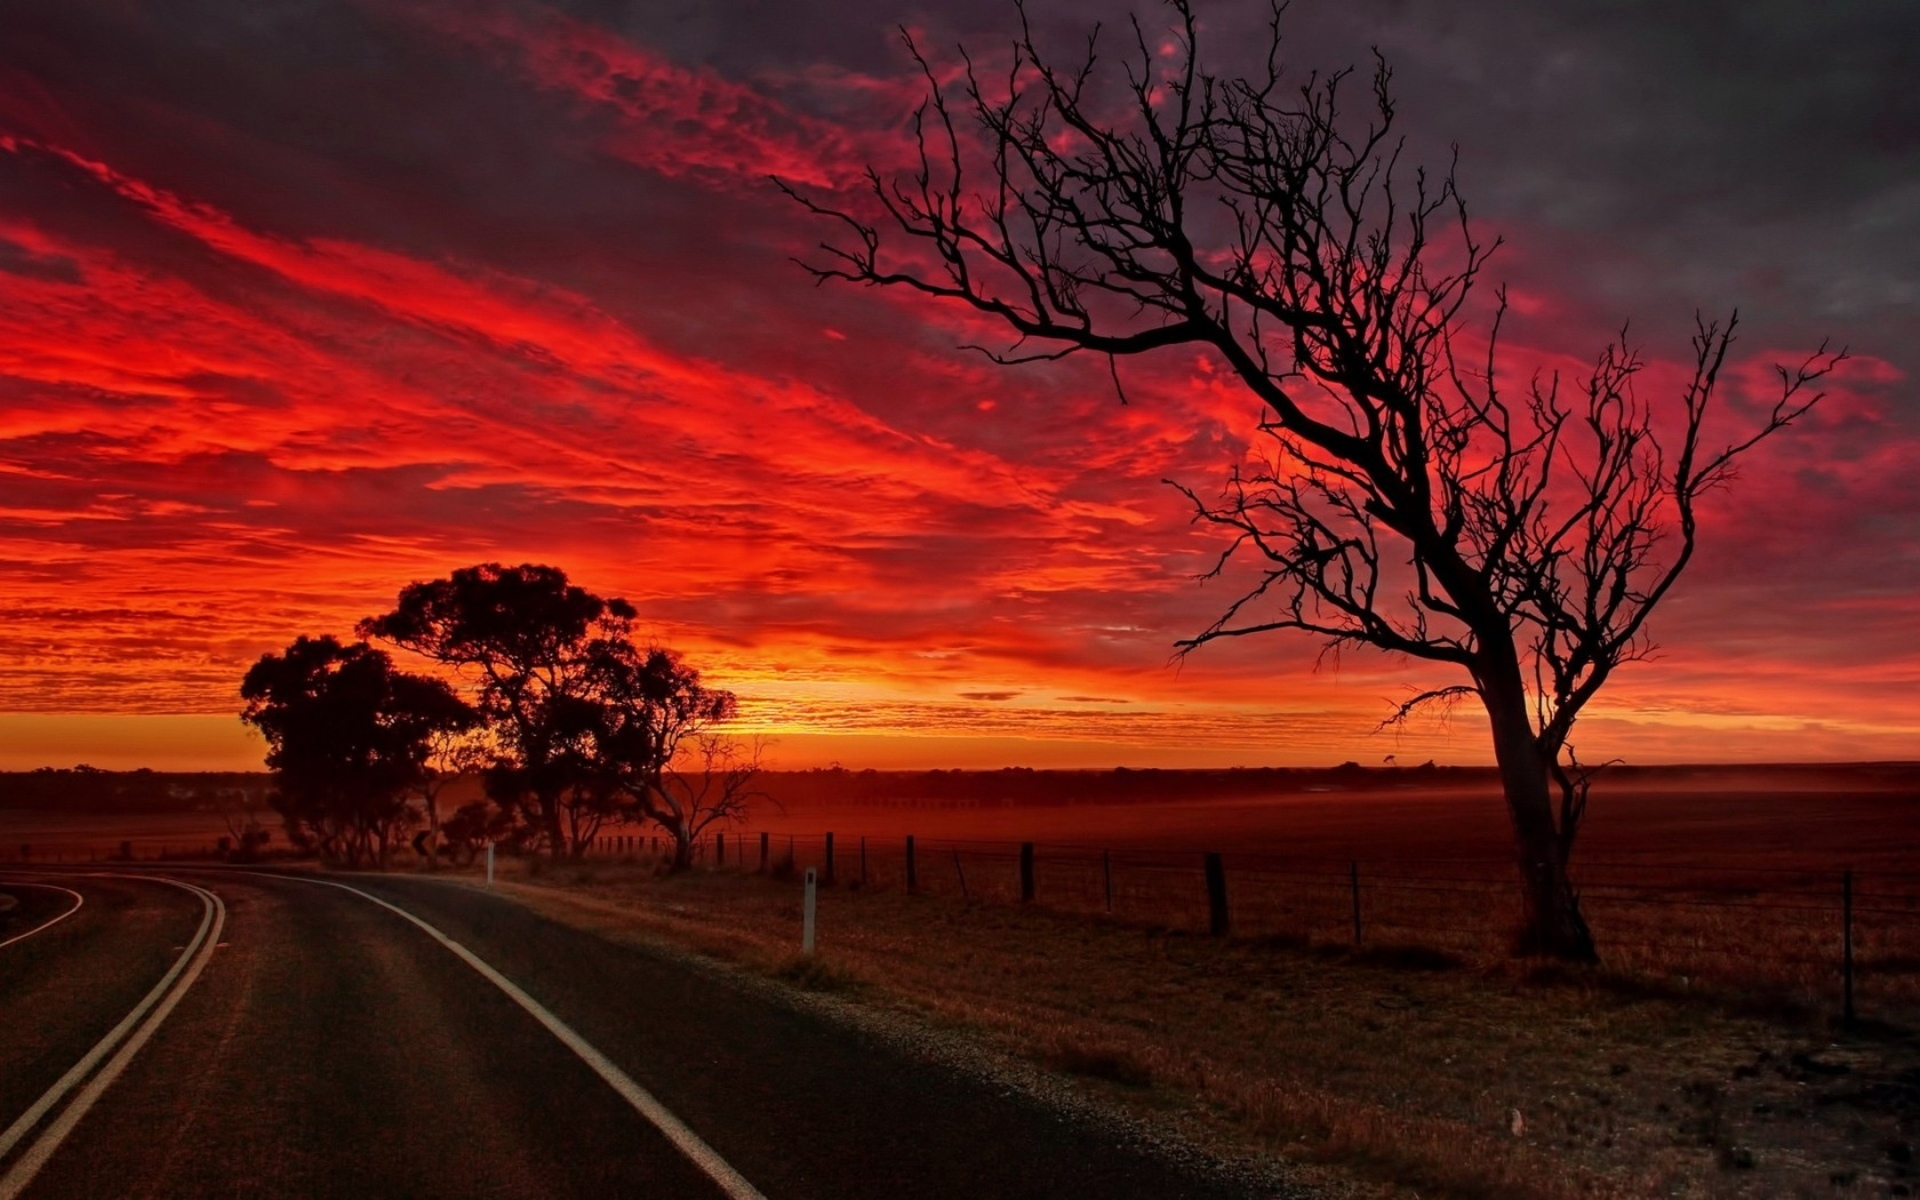 Road Sunset Wallpaper Download Pictures: Sun...